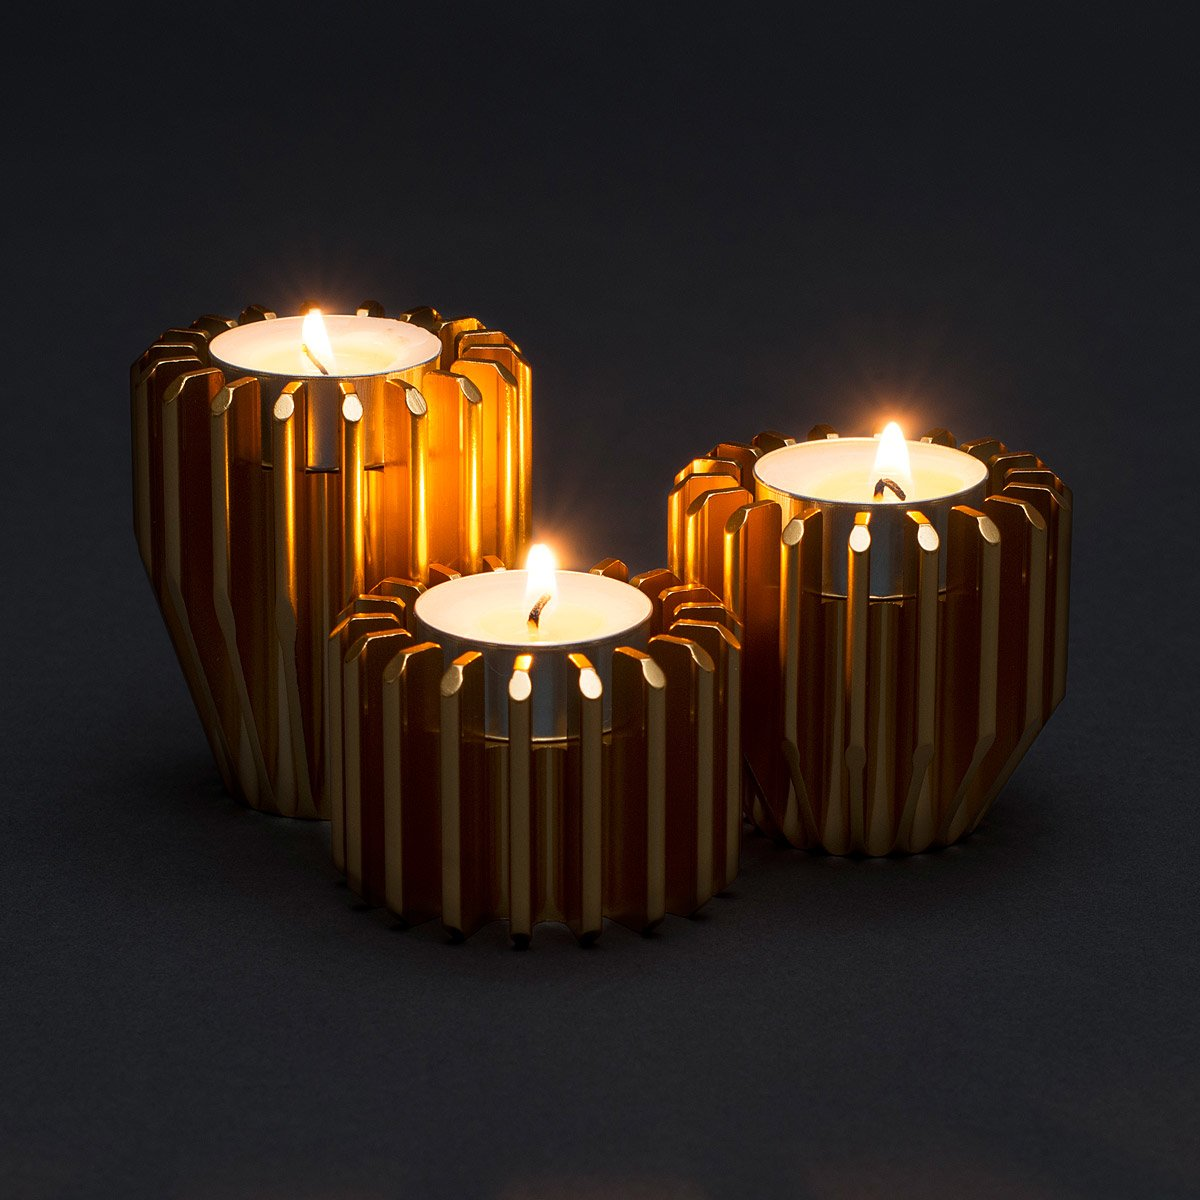 rotating gear candle holders set of 3 1 thumbnail